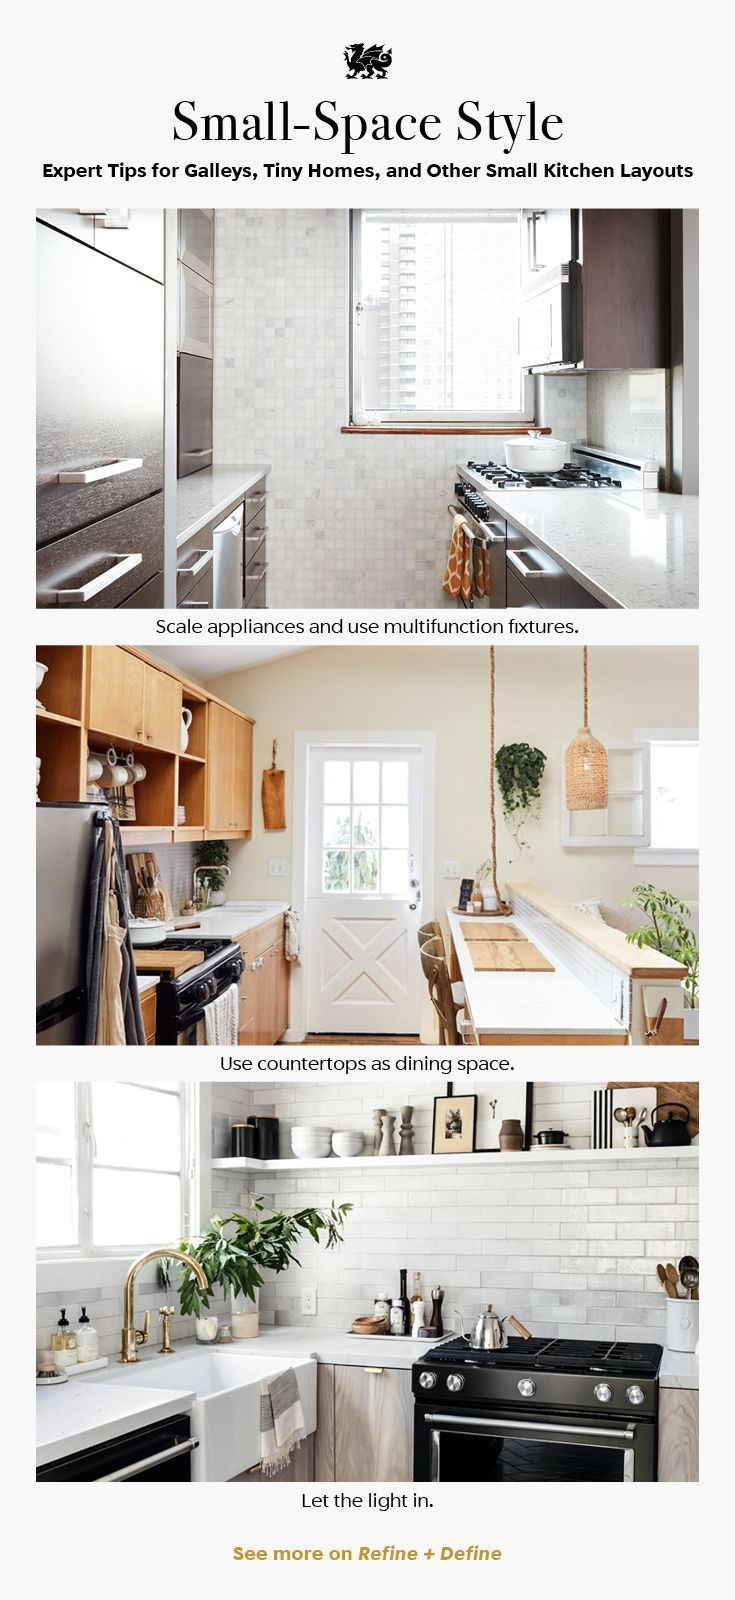 A small kitchen can still be beautiful and functional. From galley kitchens to tiny homes, these five small-space tips have you covered. [Featured designs: Darlington, Torquay, Ella ] #smallkitchendesign #smallkitchenideas #galleykitchen #tinyhomekitchen #tinyhousekitchen #MyCambria #galleykitchenlayouts A small kitchen can still be beautiful and functional. From galley kitchens to tiny homes, these five small-space tips have you covered. [Featured designs: Darlington, Torquay, Ella ] #smallkitc #galleykitchenlayouts